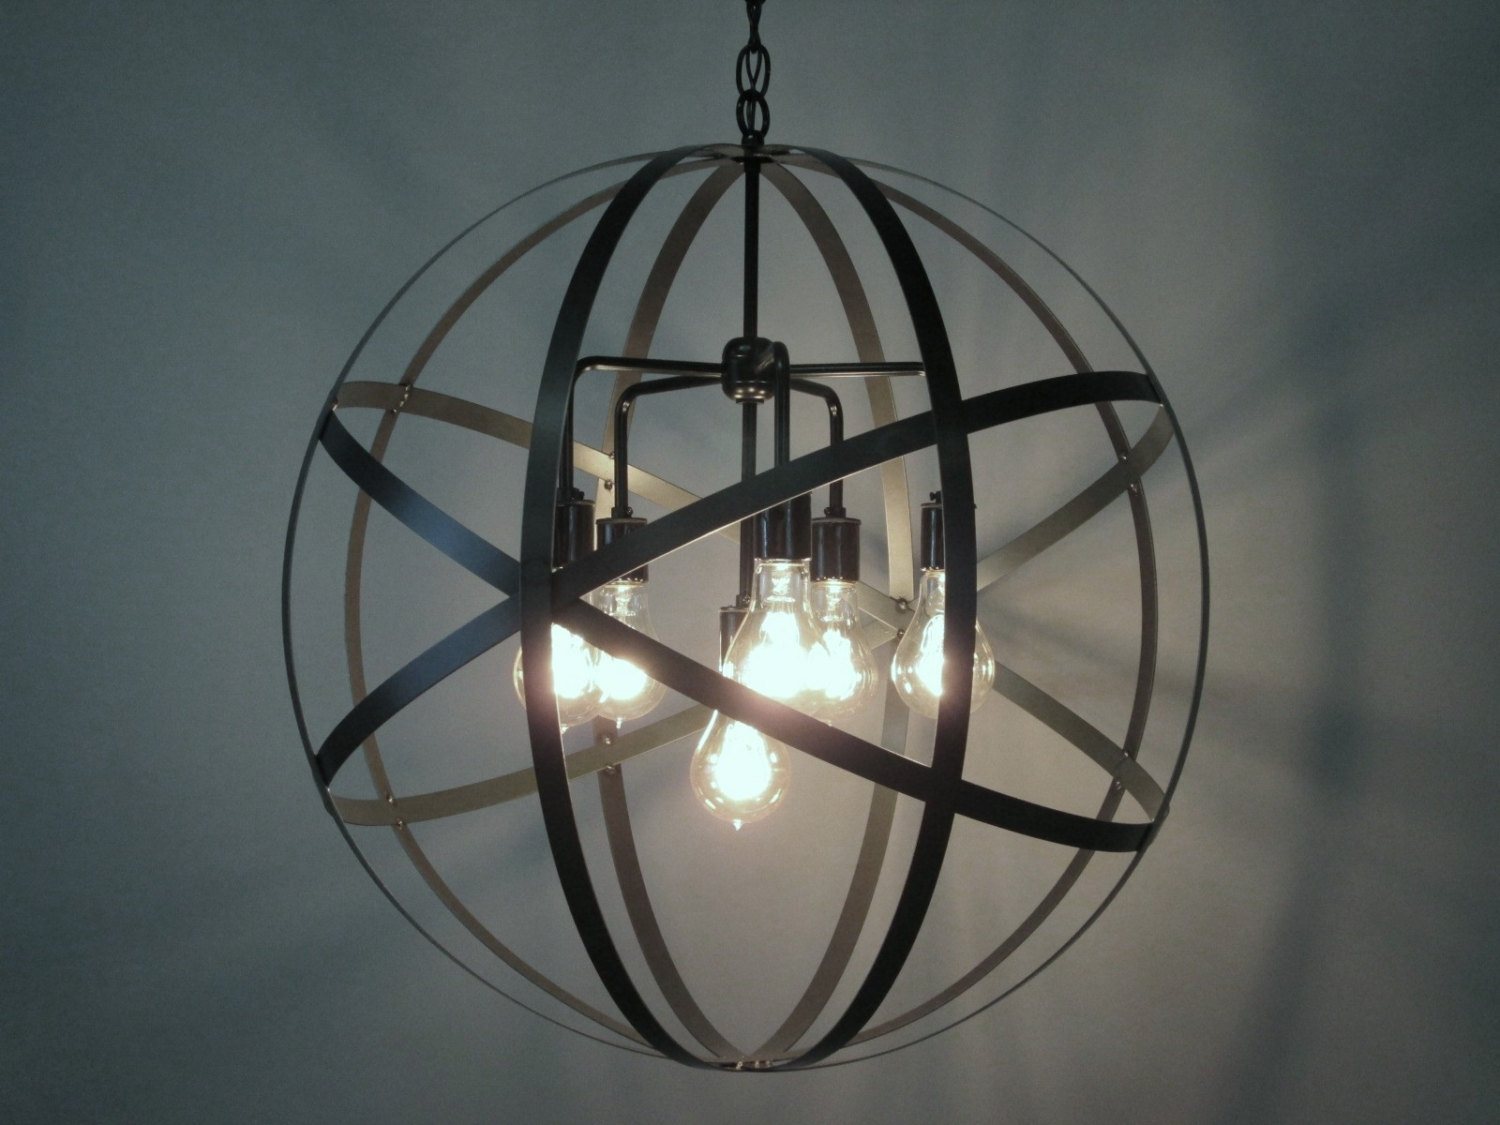 Decor Sphere Chandelier Is One Of The Best Light Fixture And Throughout Sphere Chandelier (Image 10 of 15)